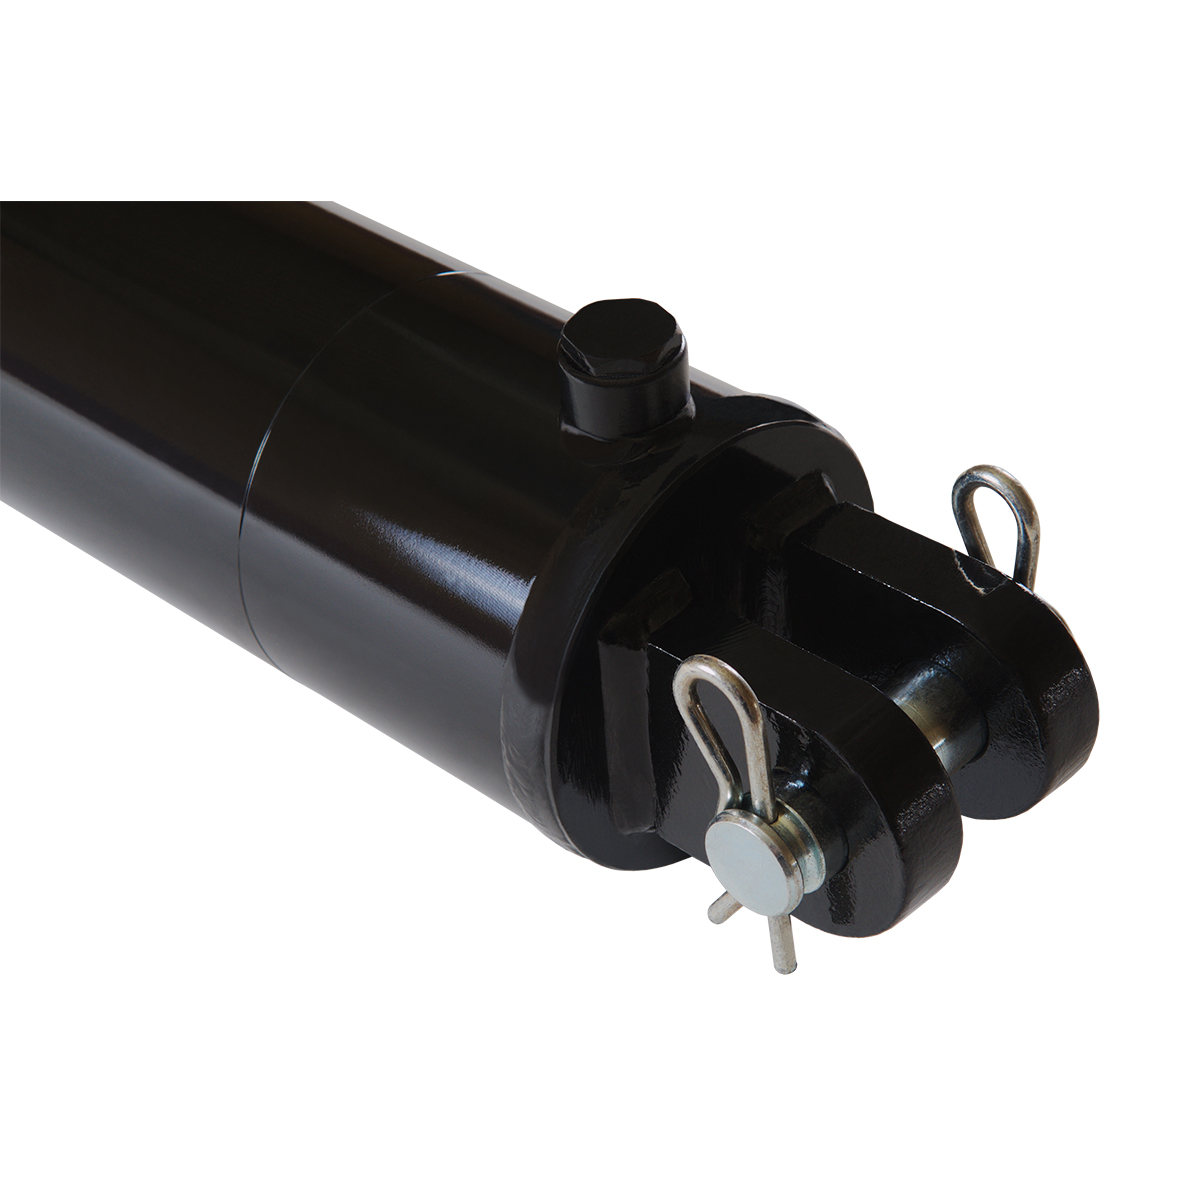 4 bore x 8 stroke hydraulic cylinder, welded clevis double acting cylinder | Magister Hydraulics